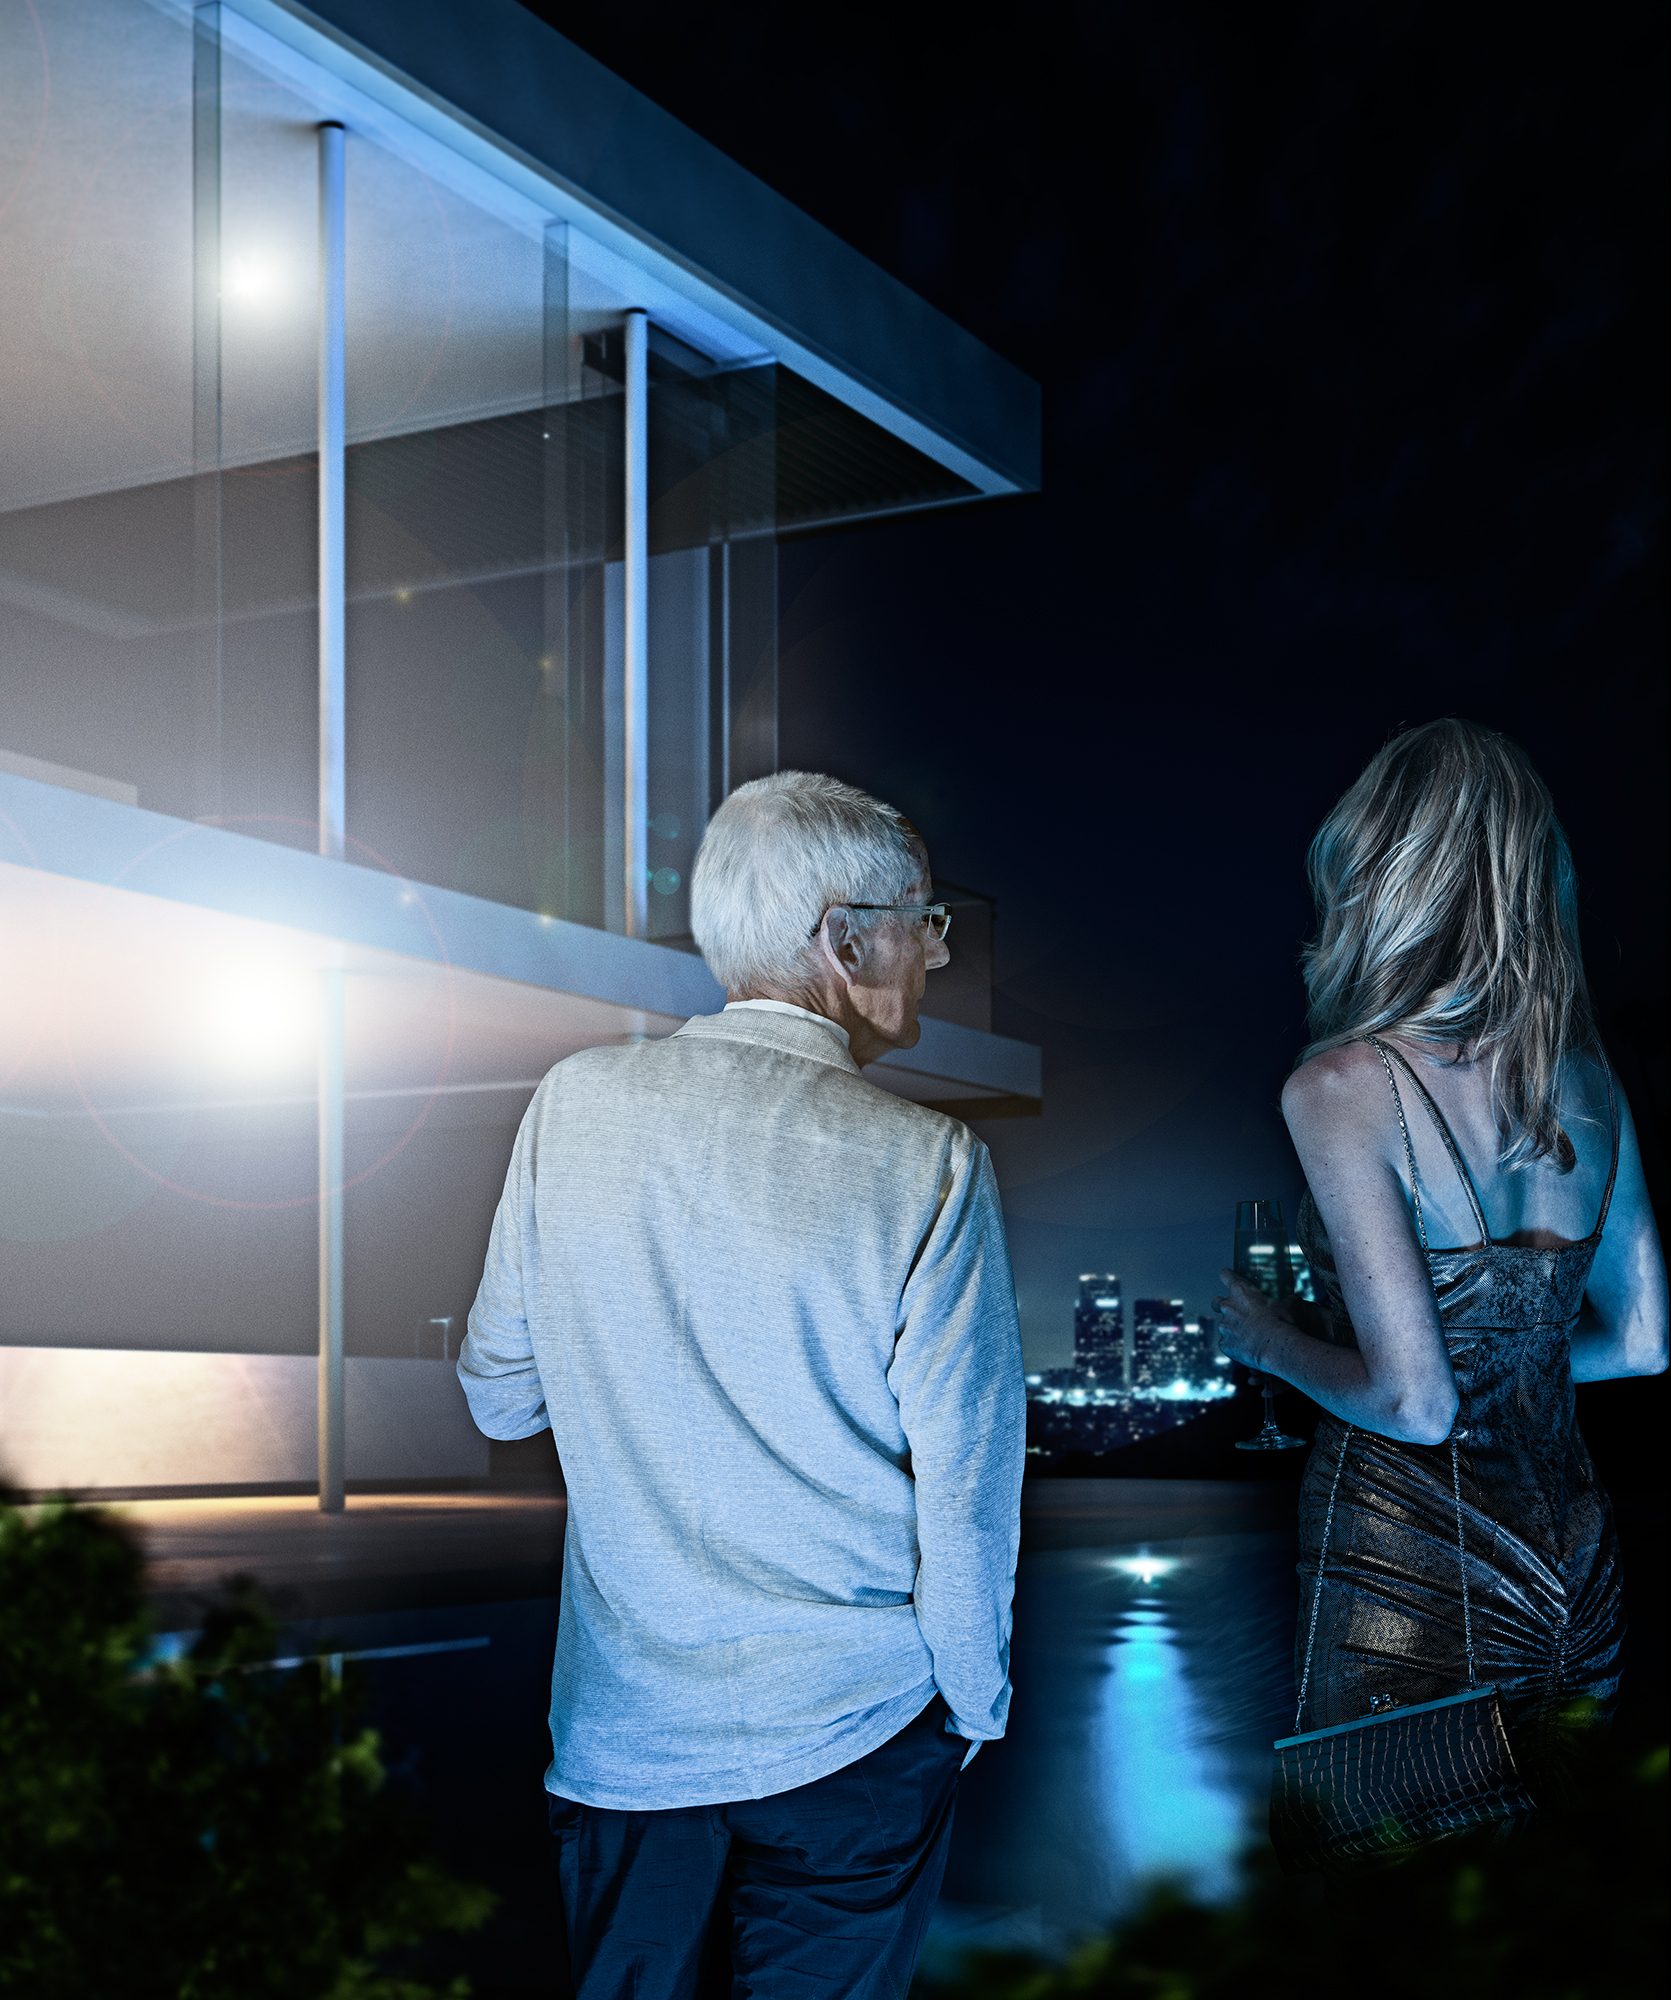 BKOZKA_a successful older man talks to an attractive woman while standing by the pool_2015.jpg